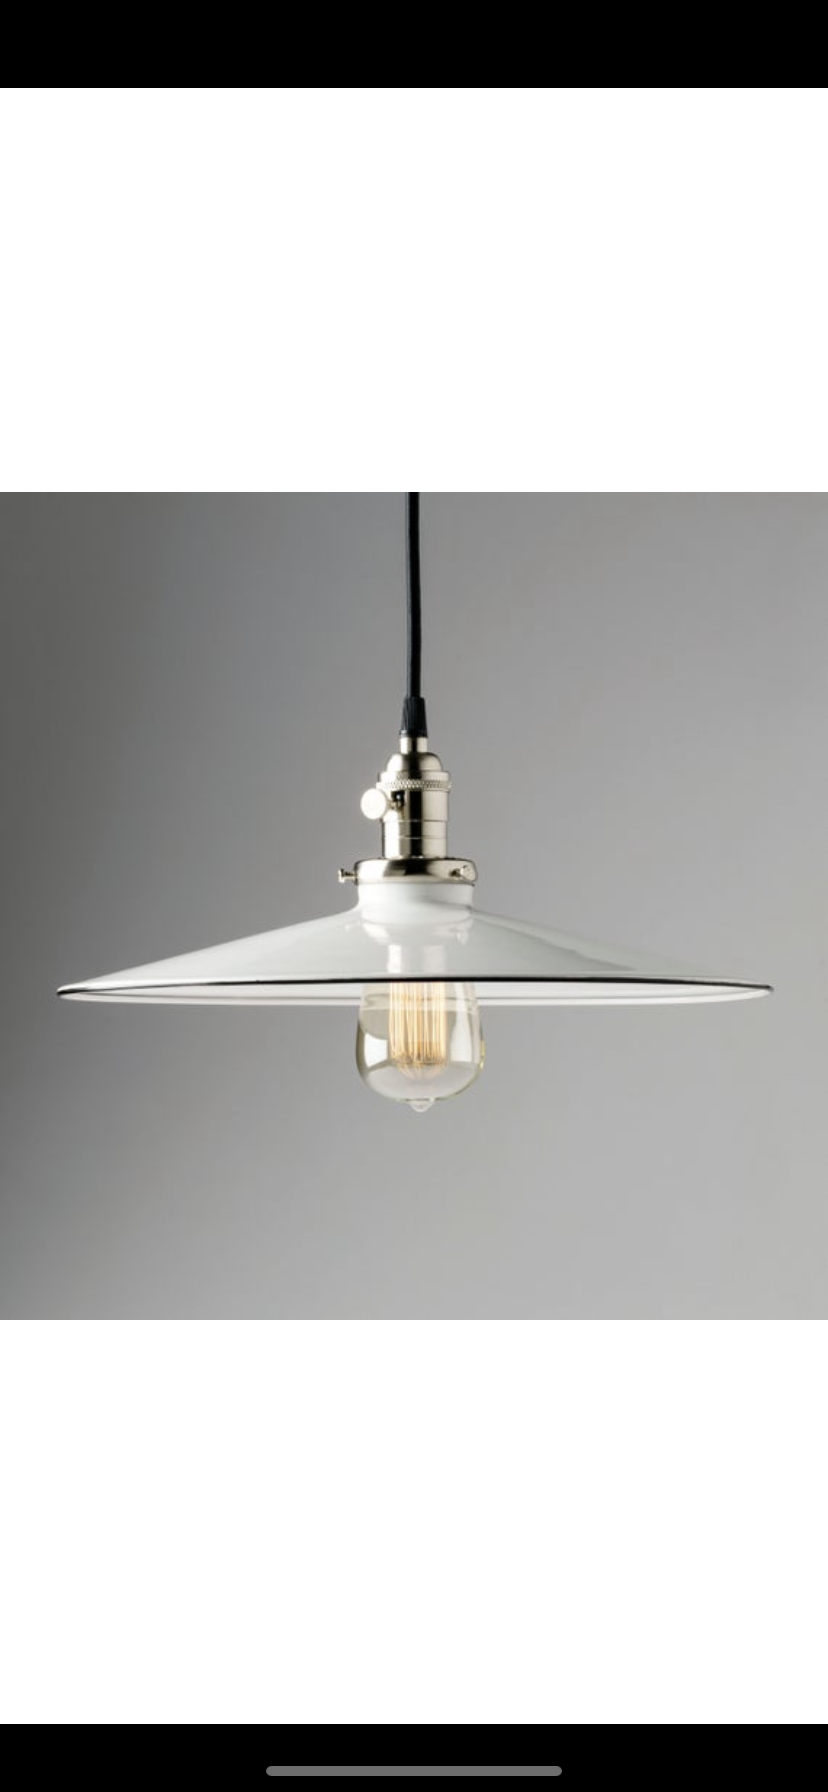 Pin by Oldebrick Lighting on Apartment Lighting in 2020 ...